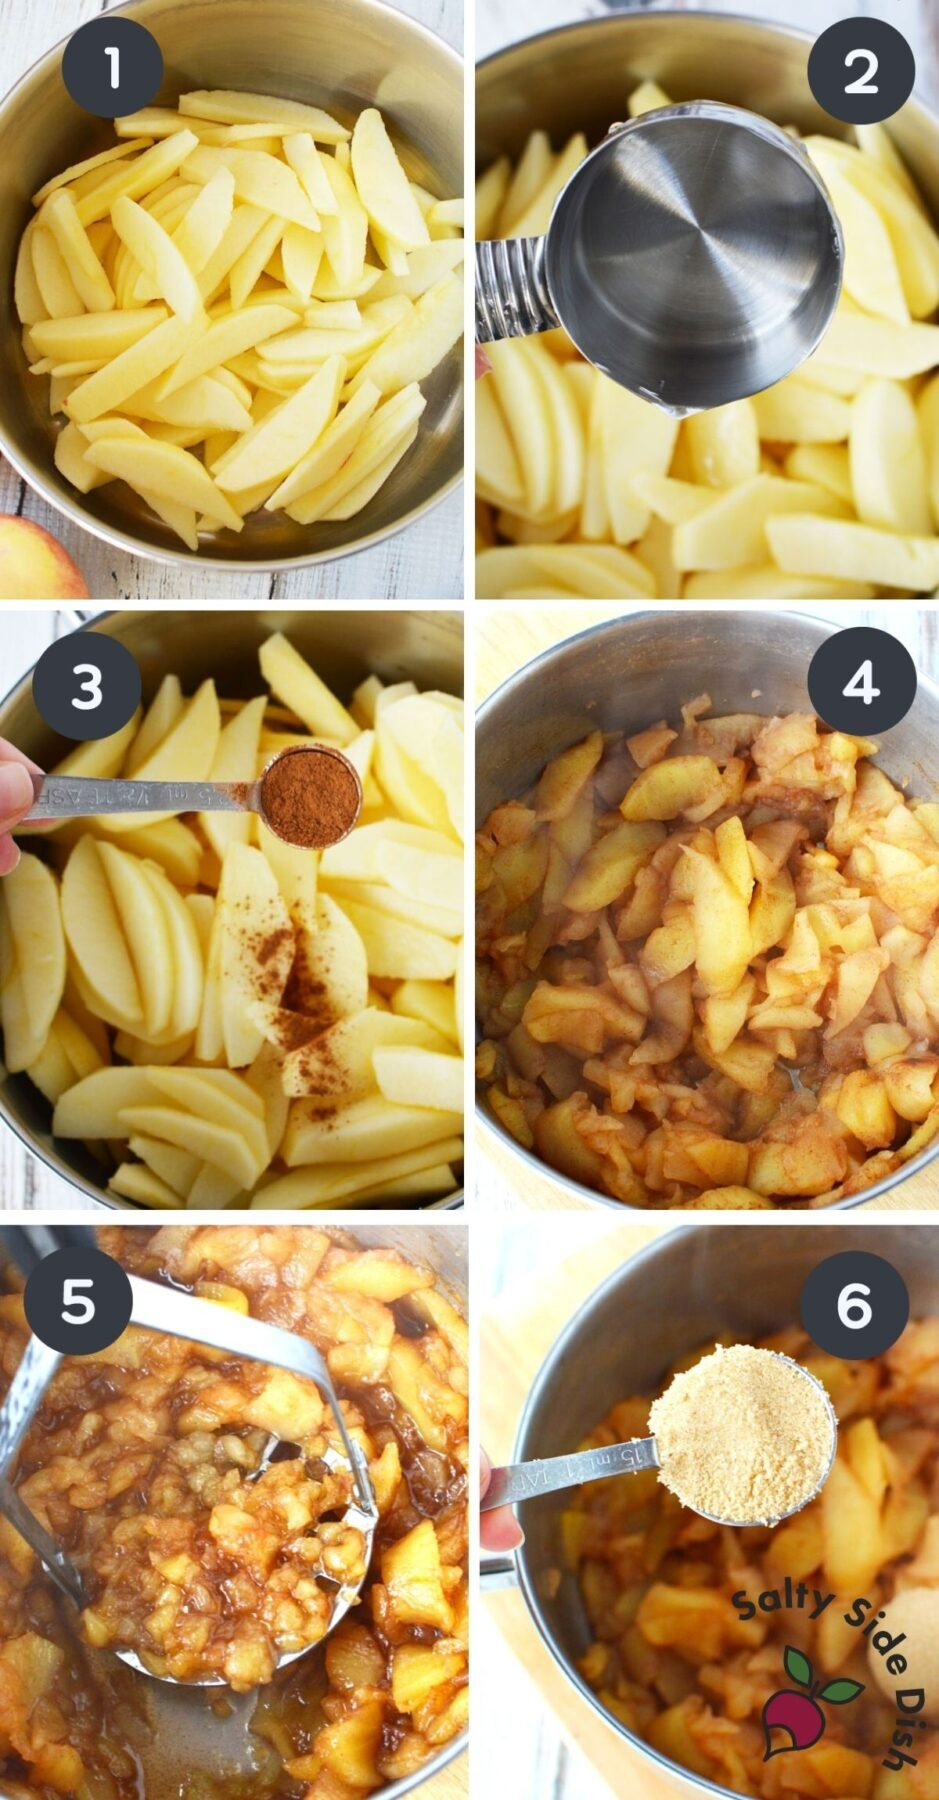 step by step image collage of how to make homemade applesauce.